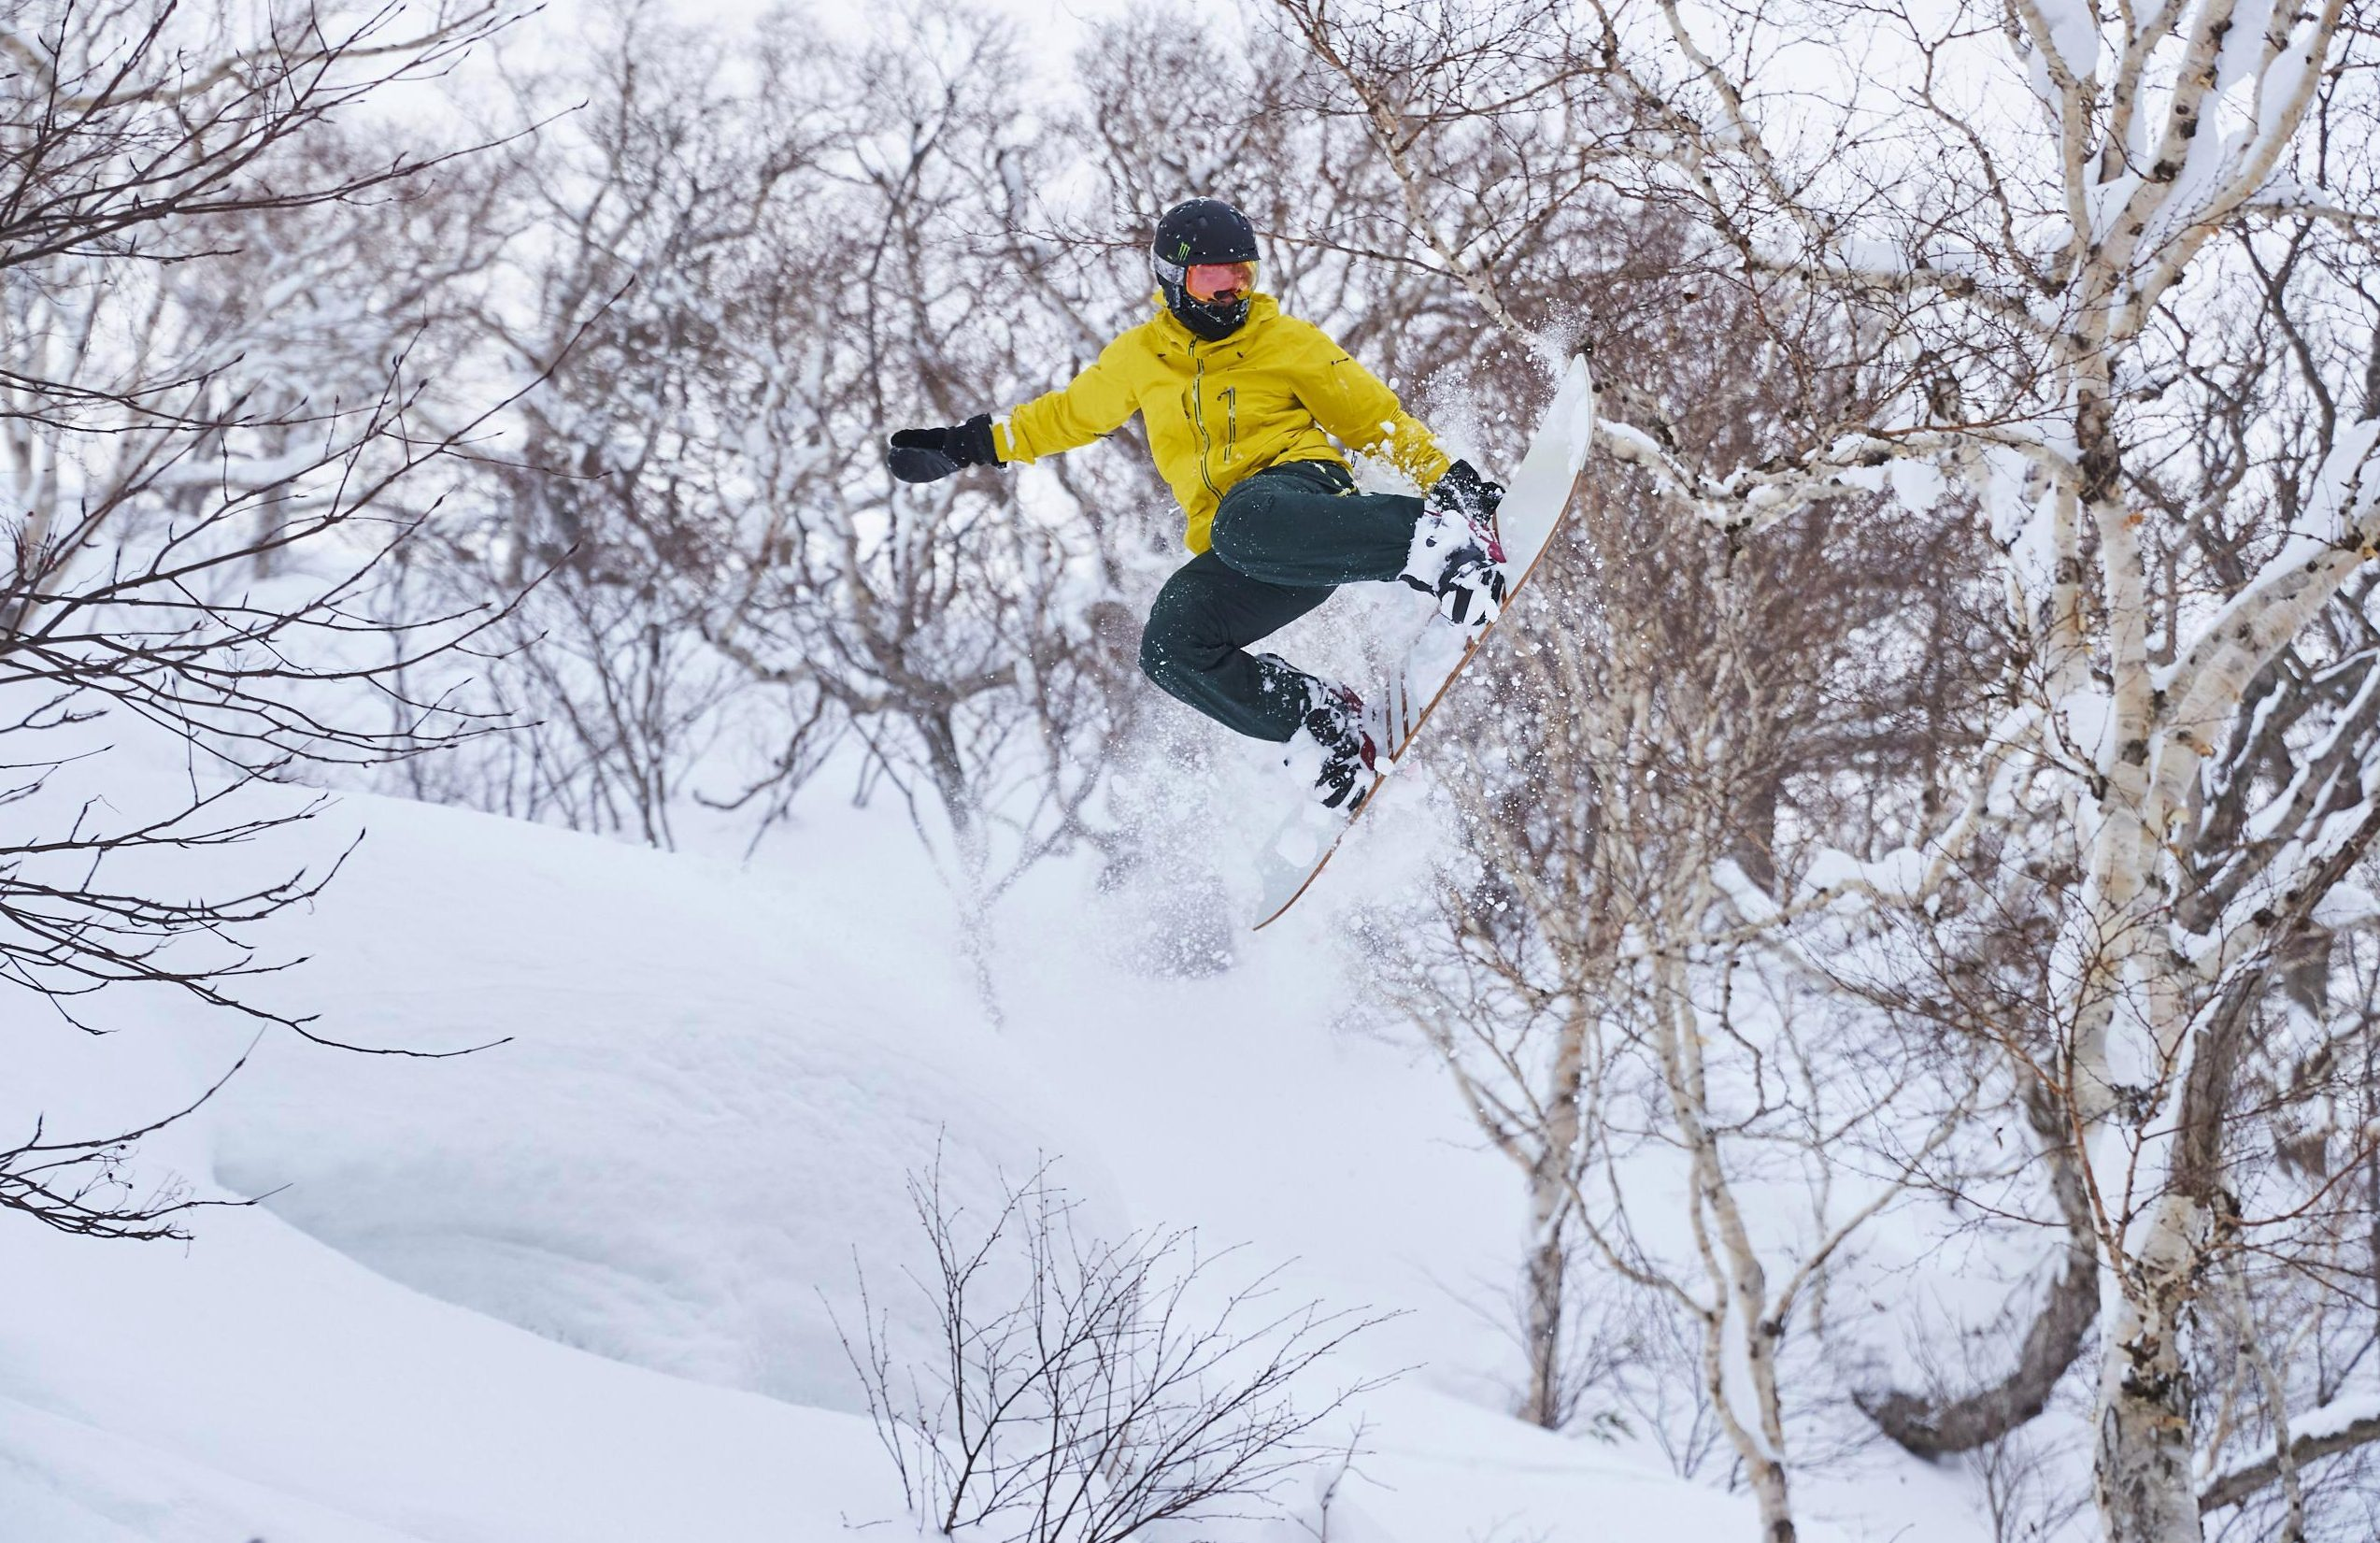 British driver Lewis Hamilton hopes to get off to a flying start in the F1 season after turning his eye to snowboarding over the winter